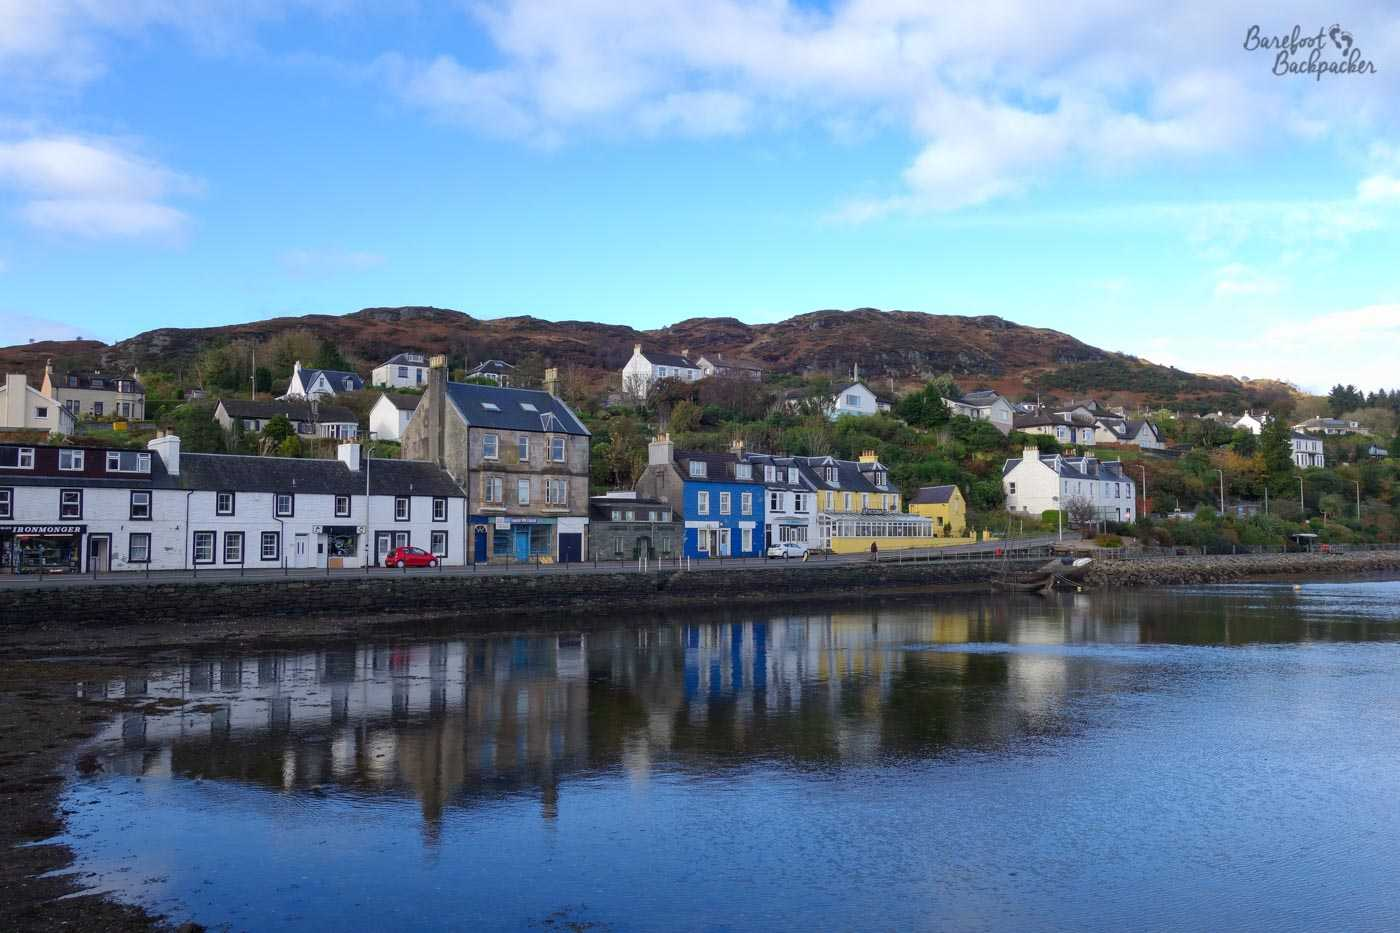 The village of Tarbert, on the shores of Loch Fyne. A series of multi-coloured low-rise buildings stand on the quayside. They are reflected in the still waters of the loch. Behind the cottages are some dark green, lush hills, and behind that, at the top of the picture, the sky is blue.